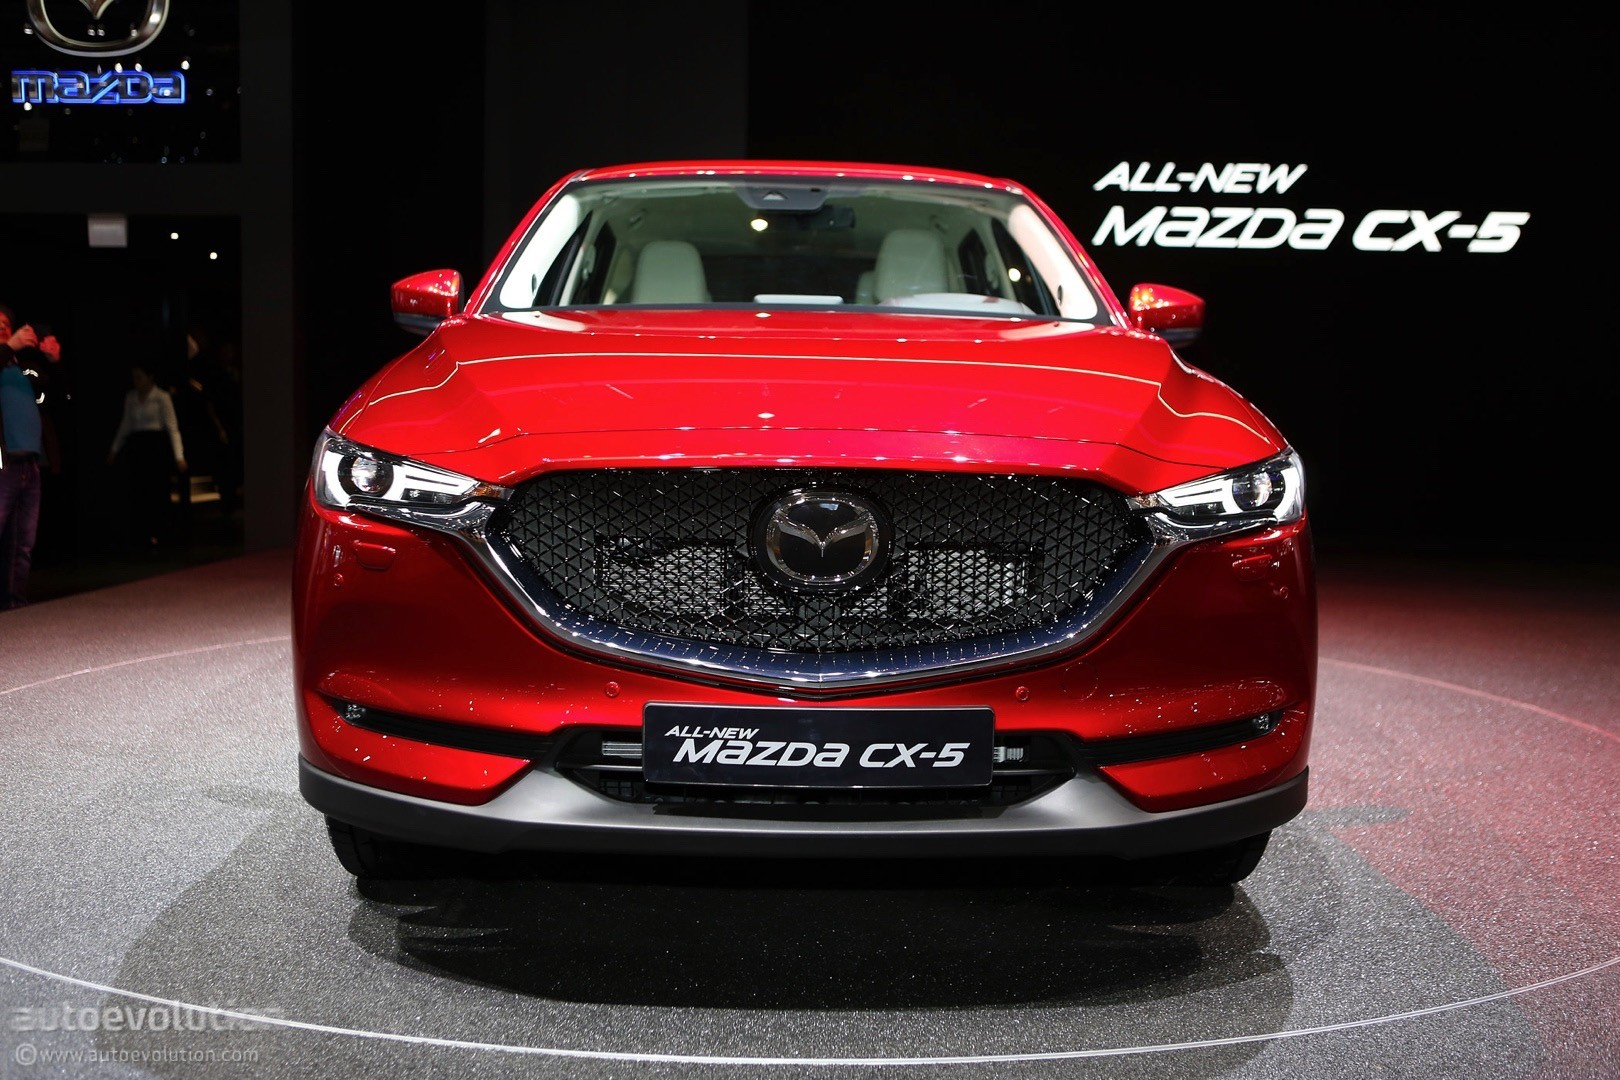 2018 Mazda CX-8 Teased In Full, It's More CX-9 Than CX-5 ...